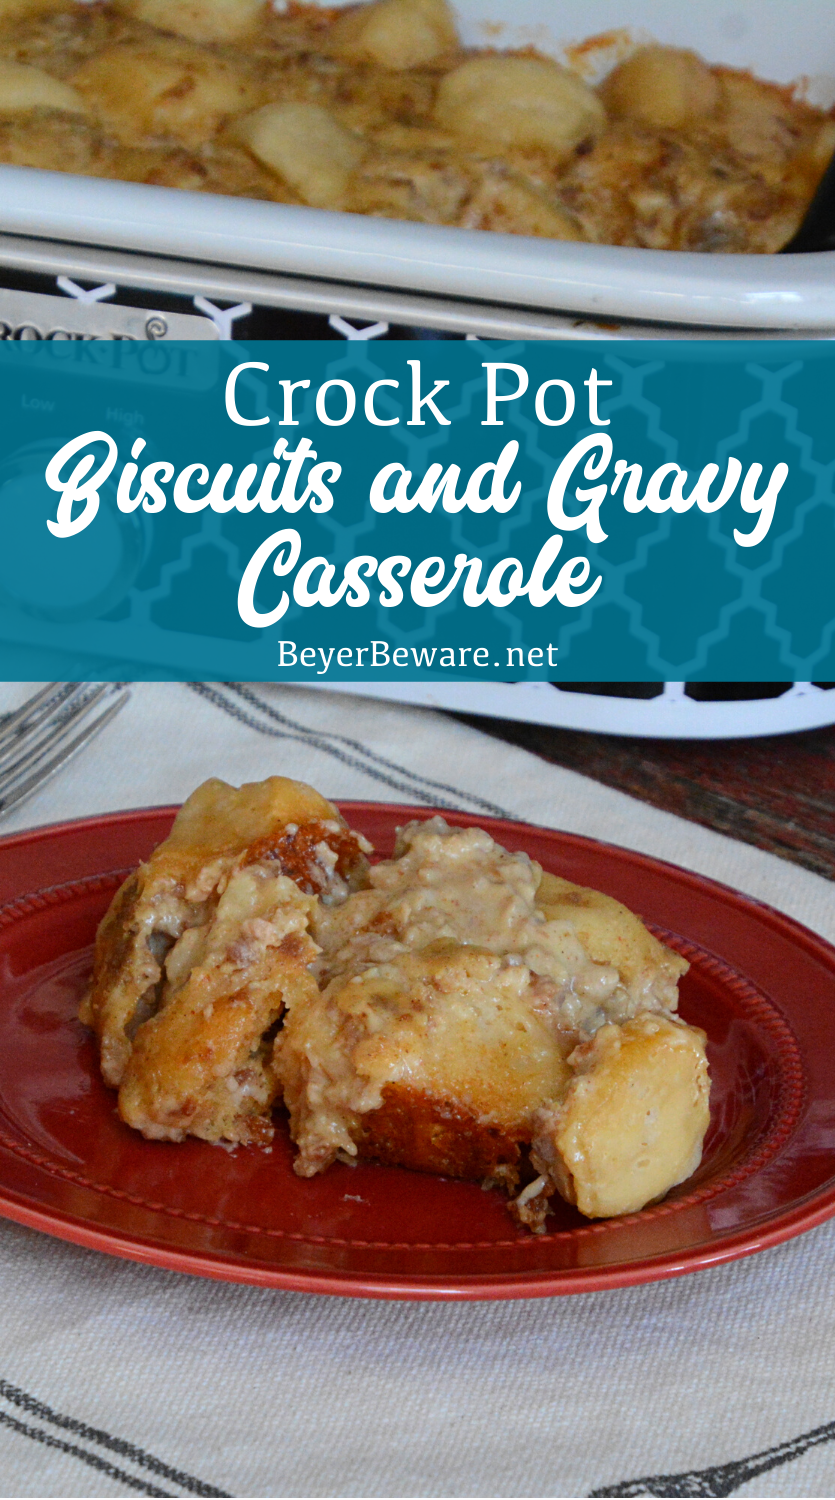 Crockpot Biscuits and Gravy Casserole is a slow cooked combination of grands biscuits with country sausage gravy for an amazing breakfast casserole that isn't egg based.